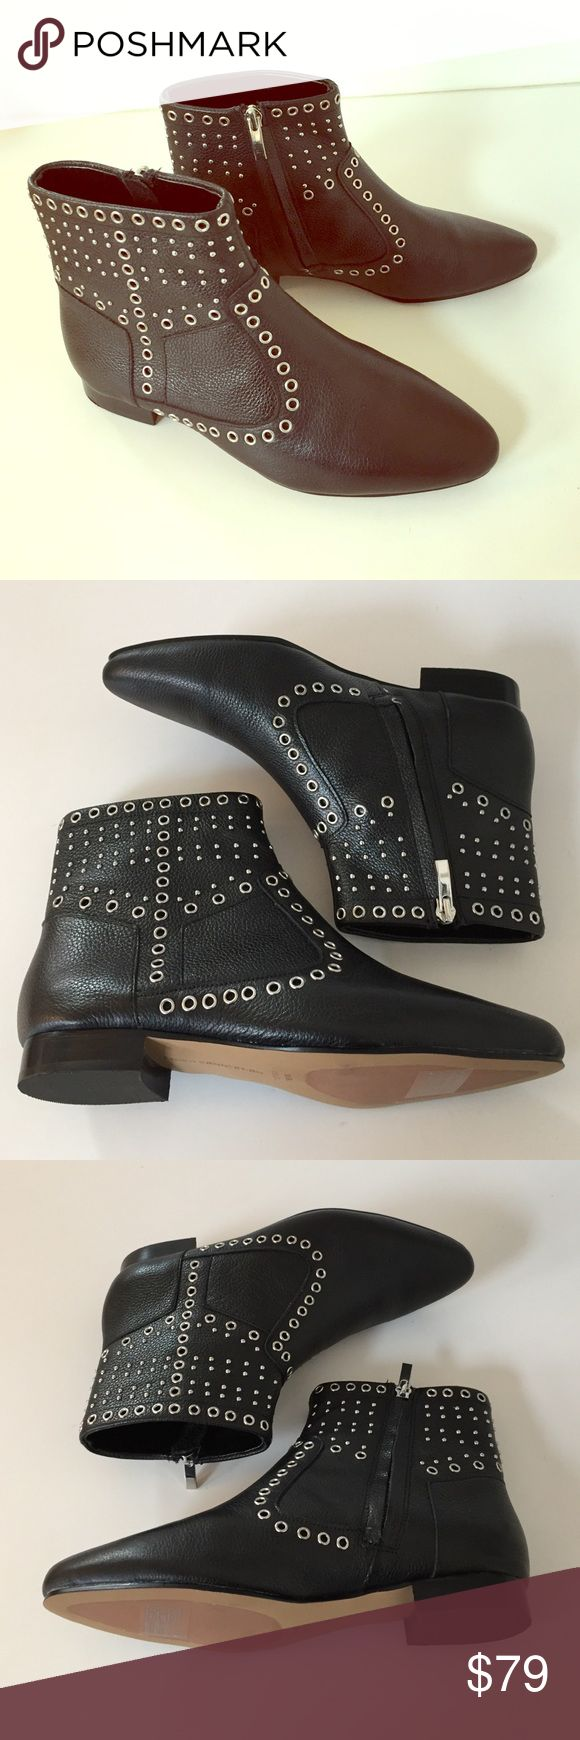 French Connection studded leather boots French Connection studded leather boots. Never worn. French Connection Shoes Ankle Boots & Booties